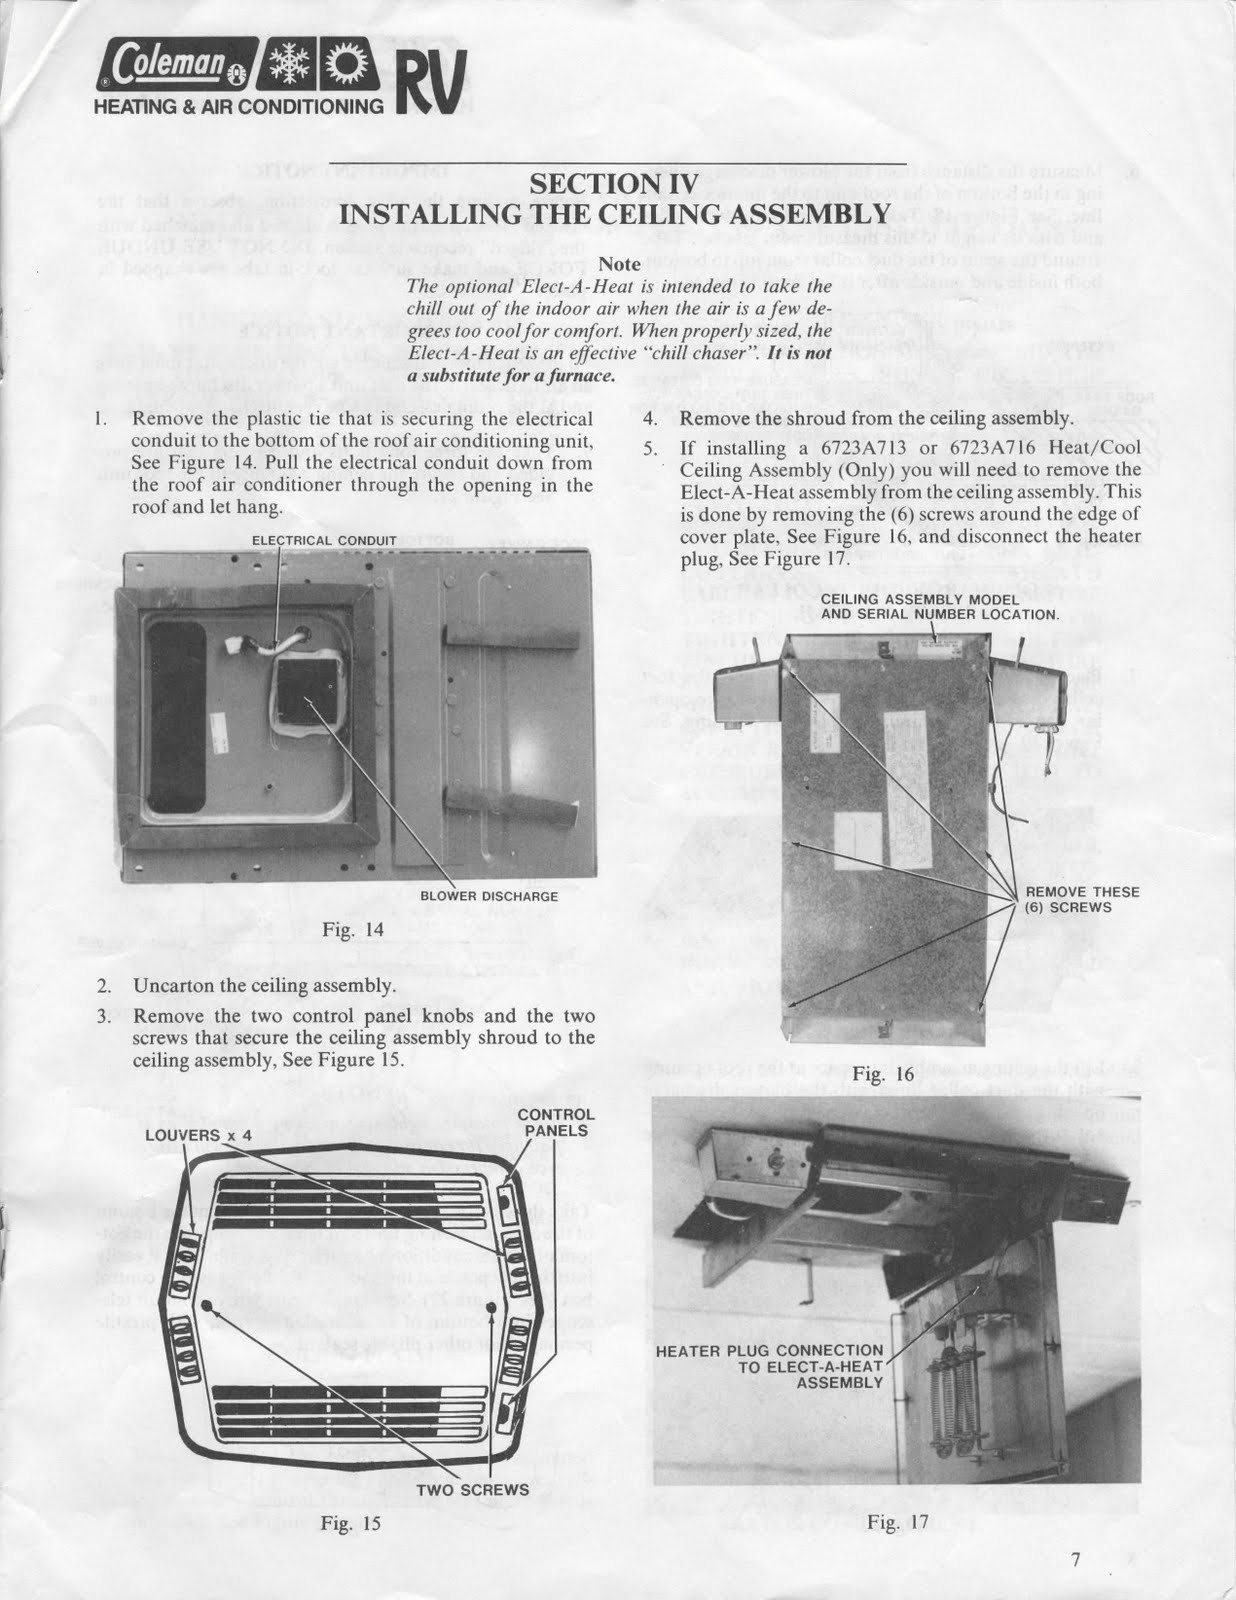 coleman columbia wiring diagram coleman fleetwood wiring diagram 1983 fleetwood pace arrow owners manuals rv air #6